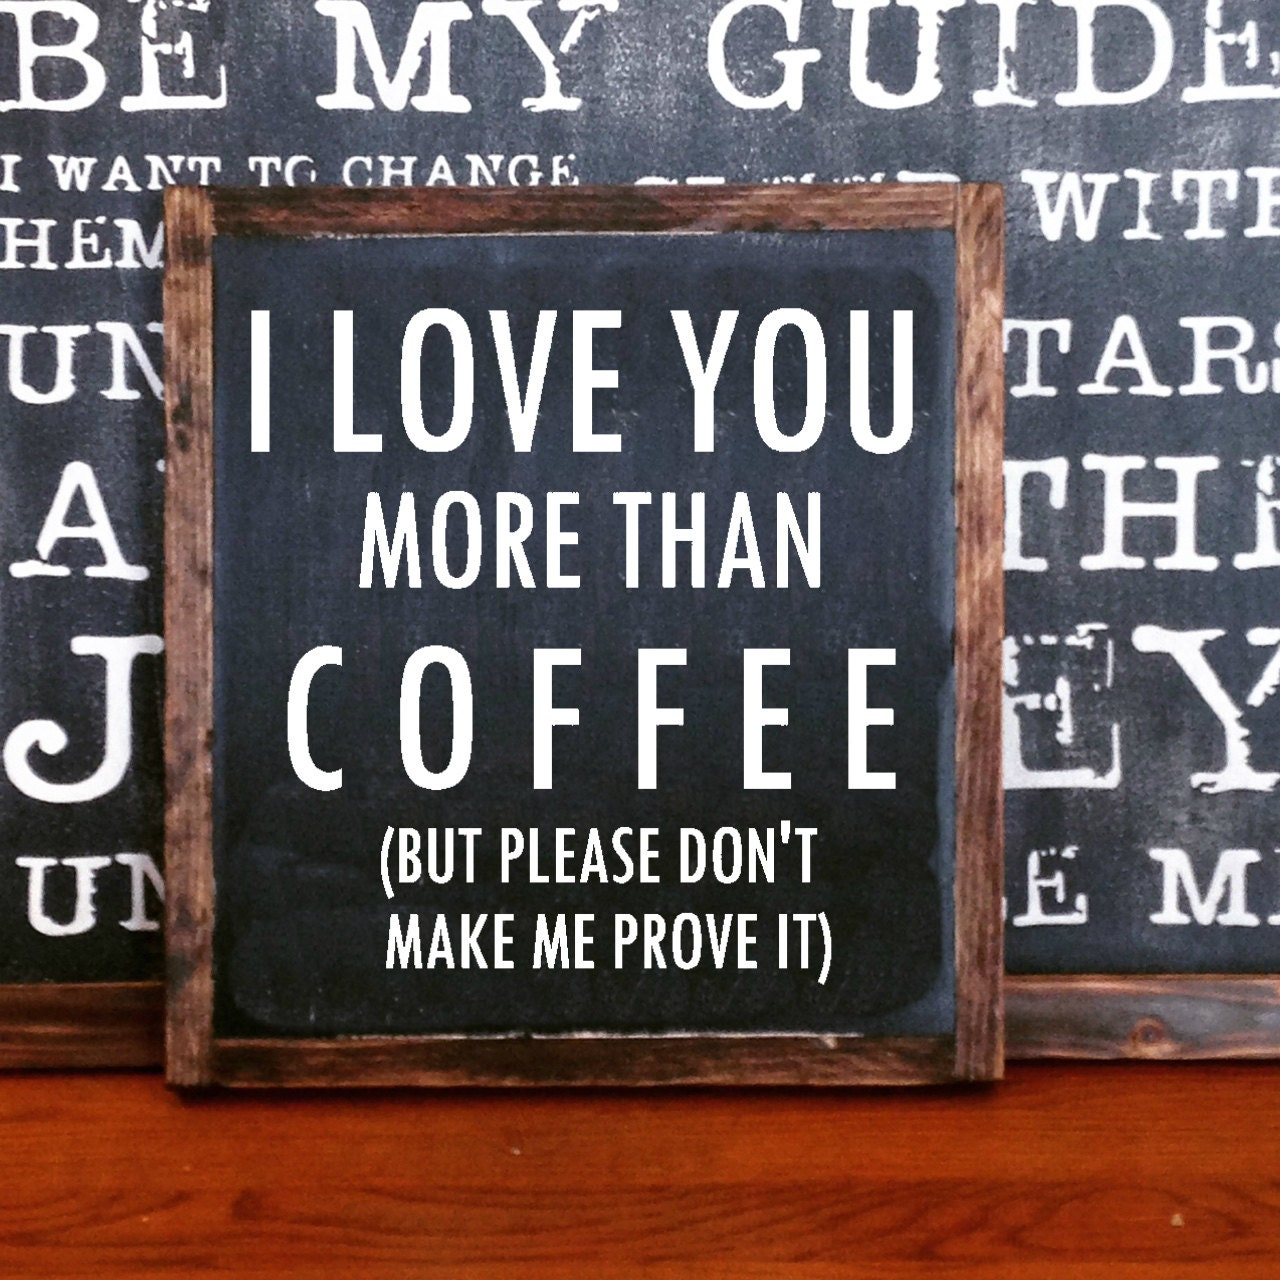 I love you more than coffee but please dont make me prove